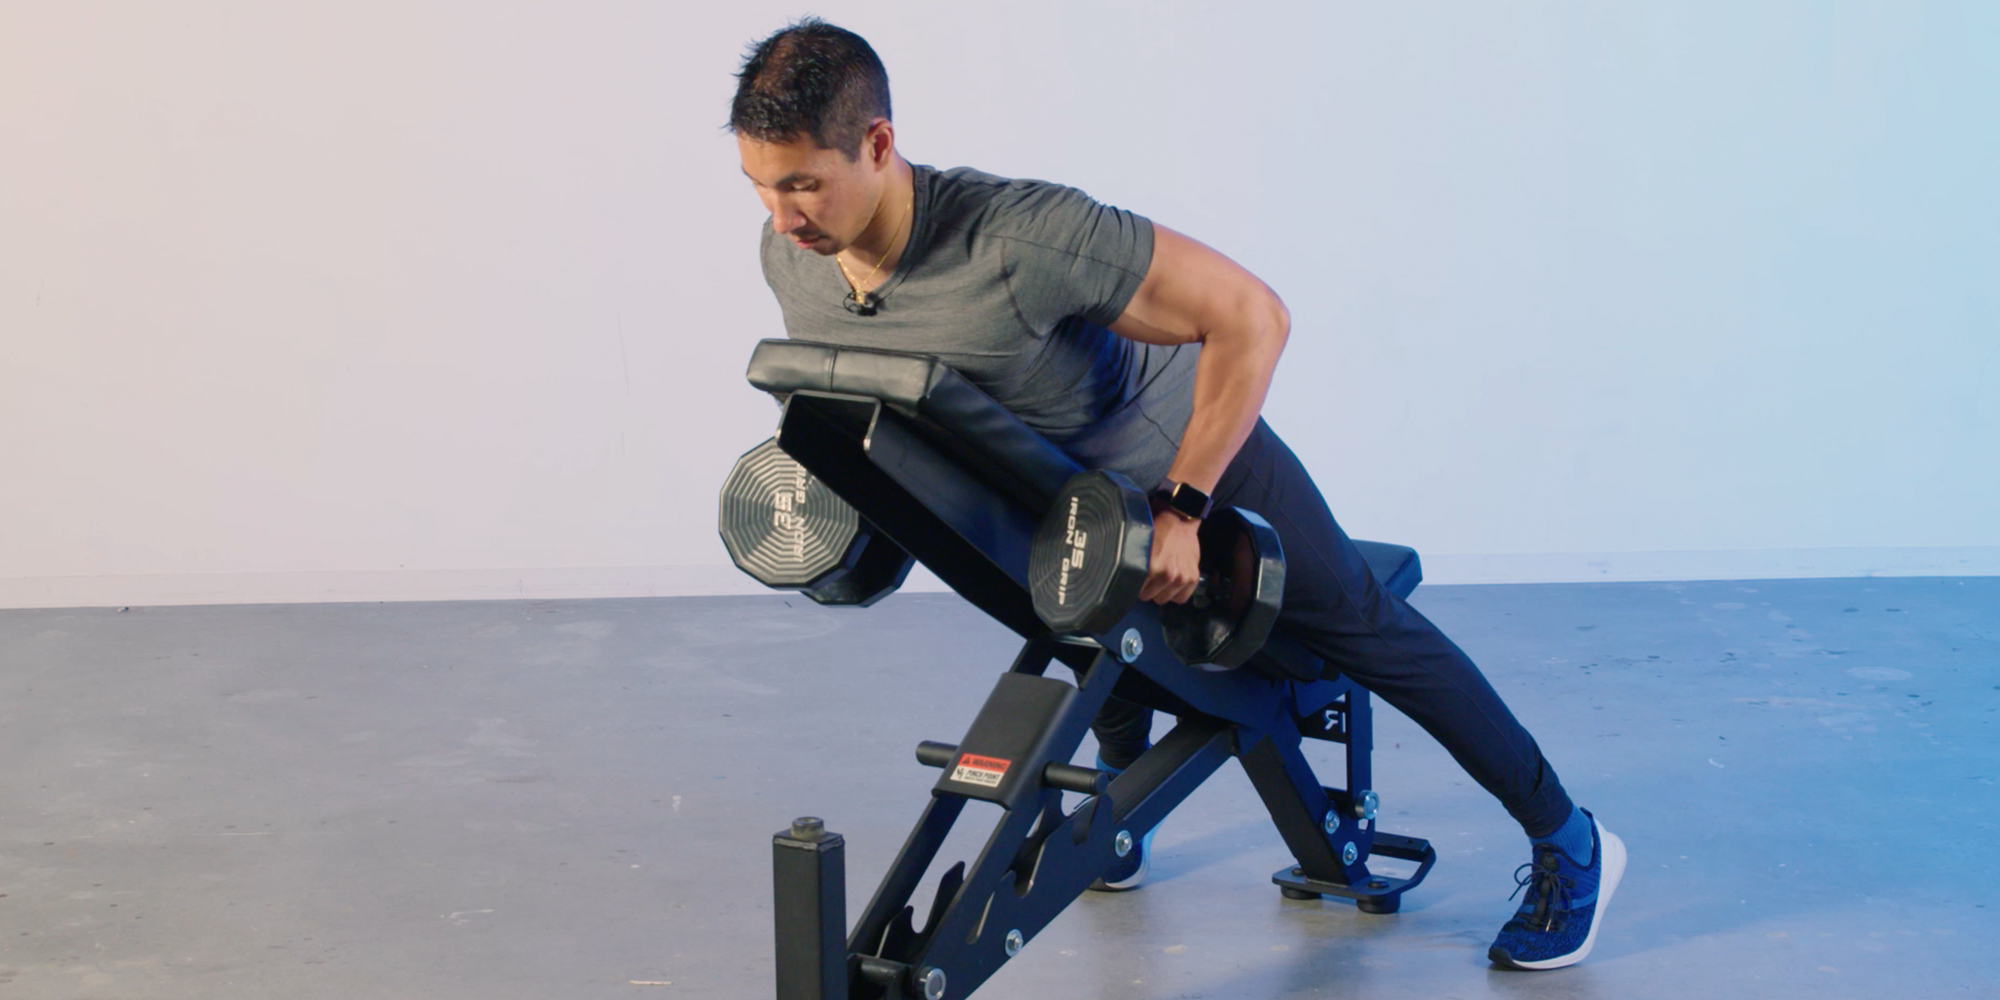 The Incline Bench Row Will Blow Up Your Back